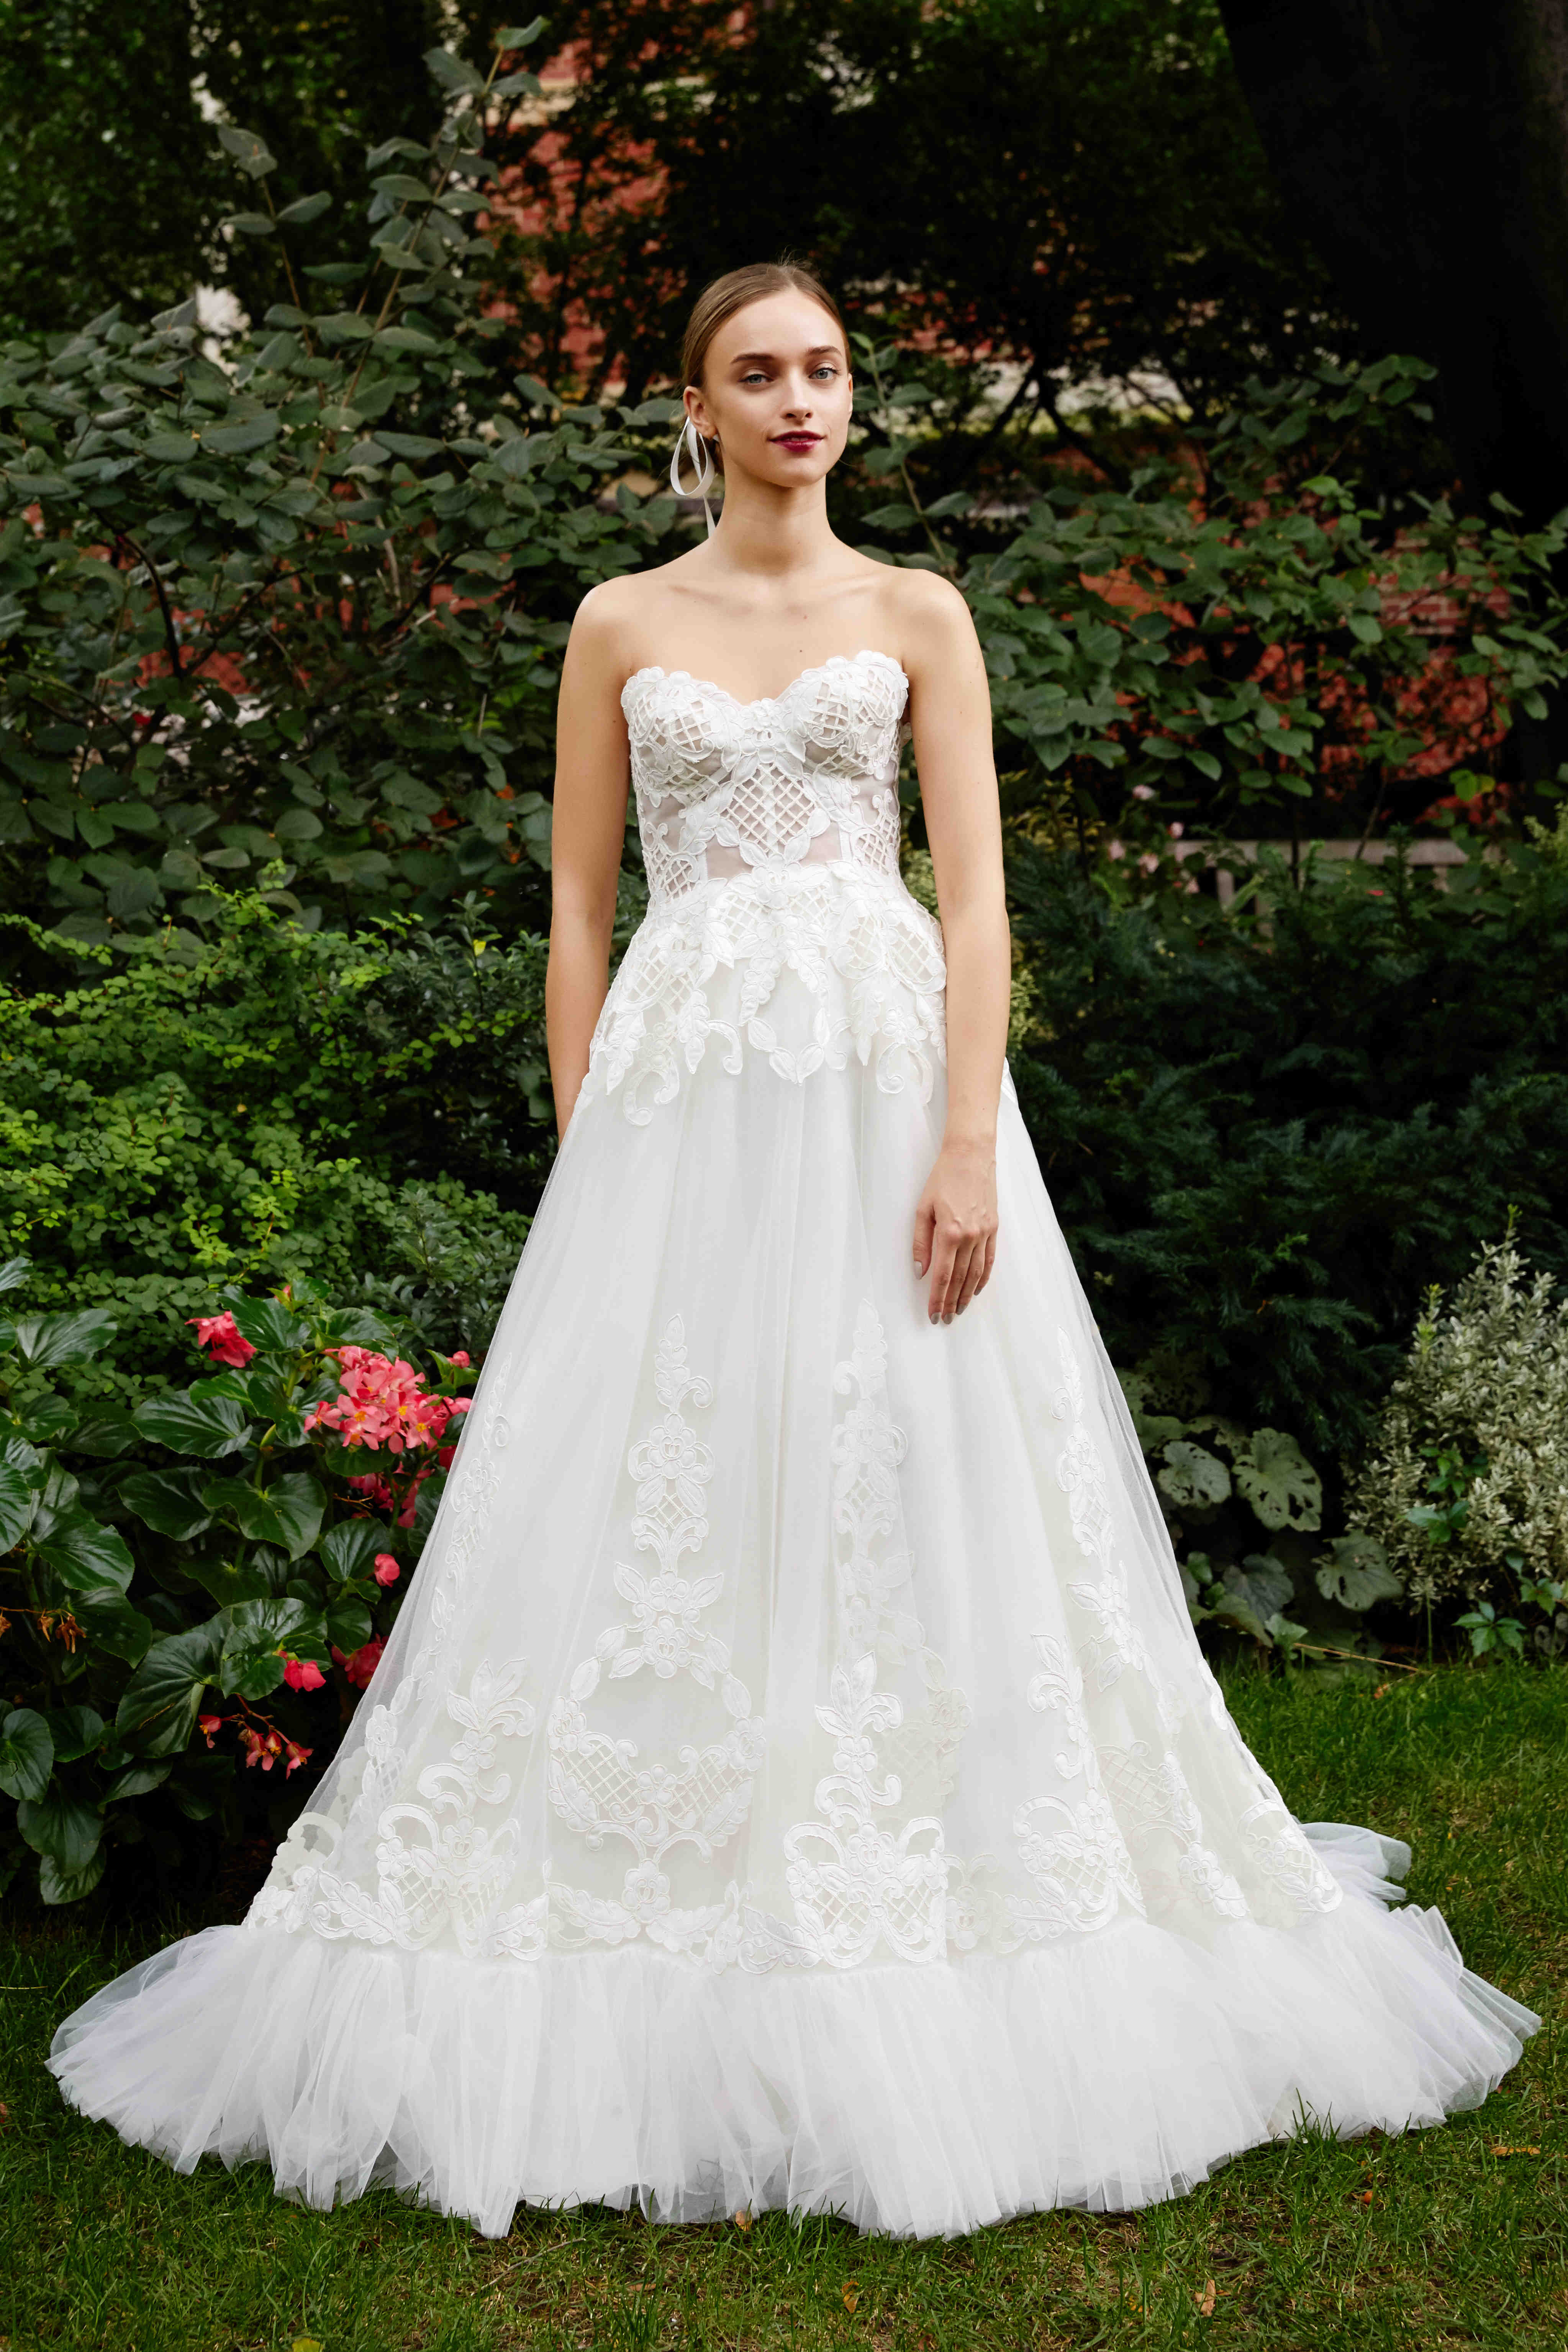 Lela Rose A-Line wedding dress with tulle fall 2019